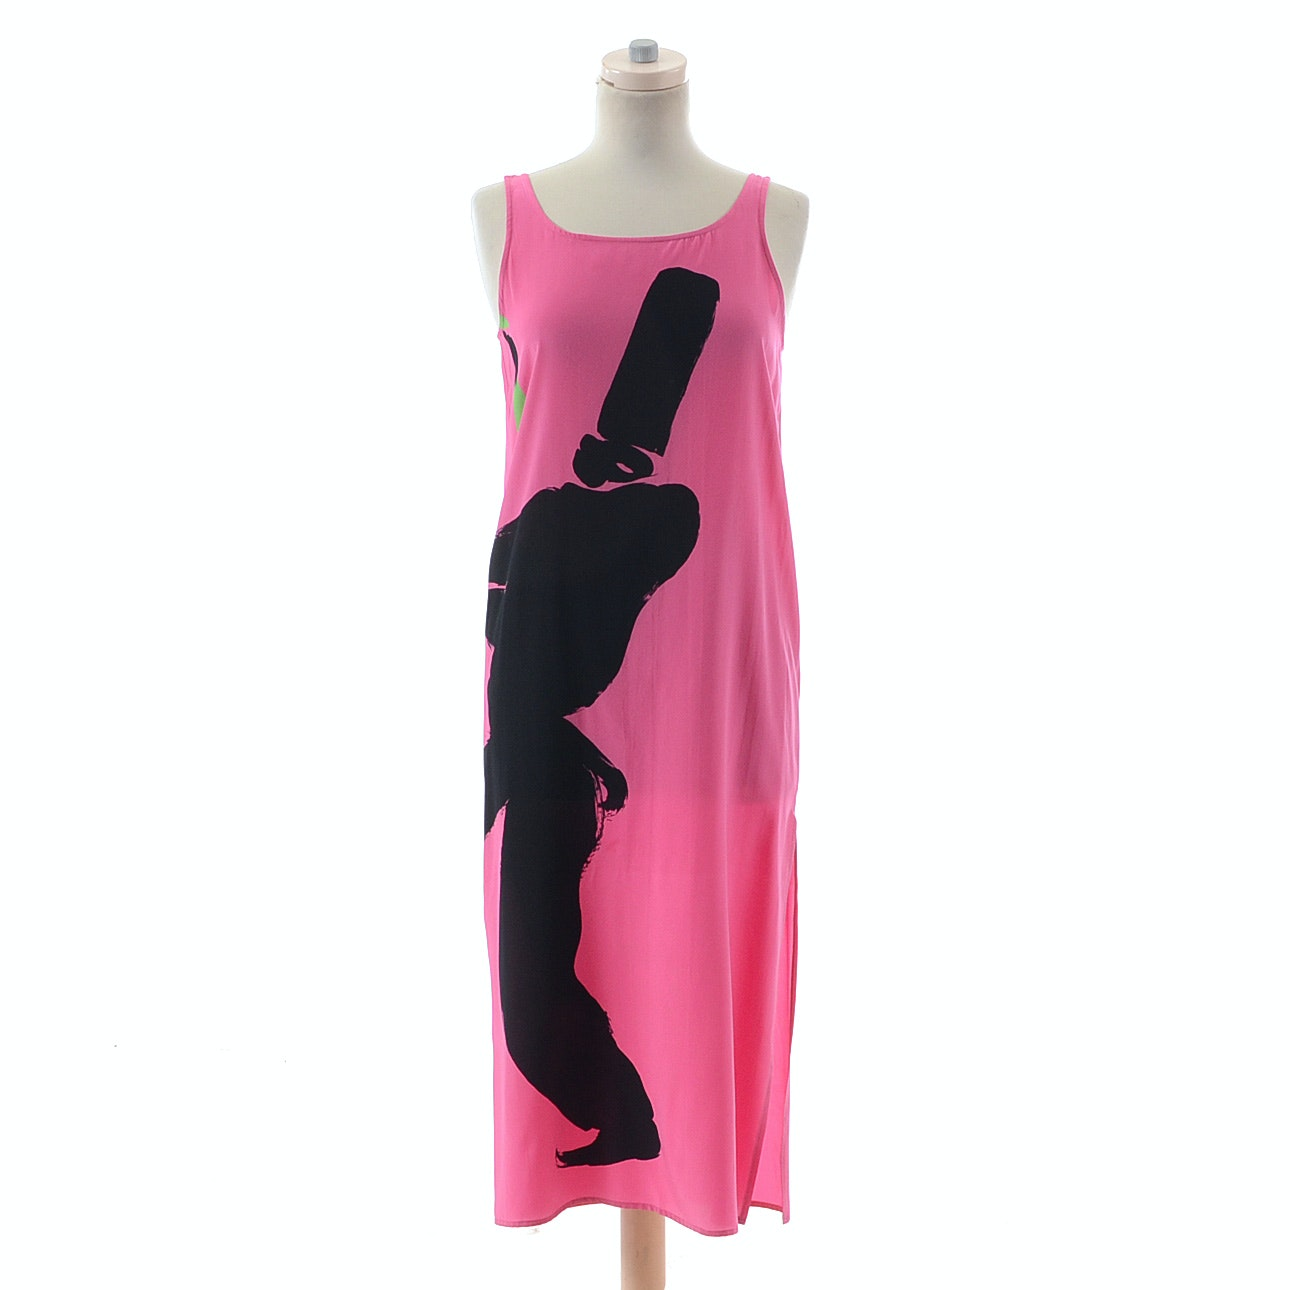 DB2 Cygne Design Silk Print Sleeveless Dress